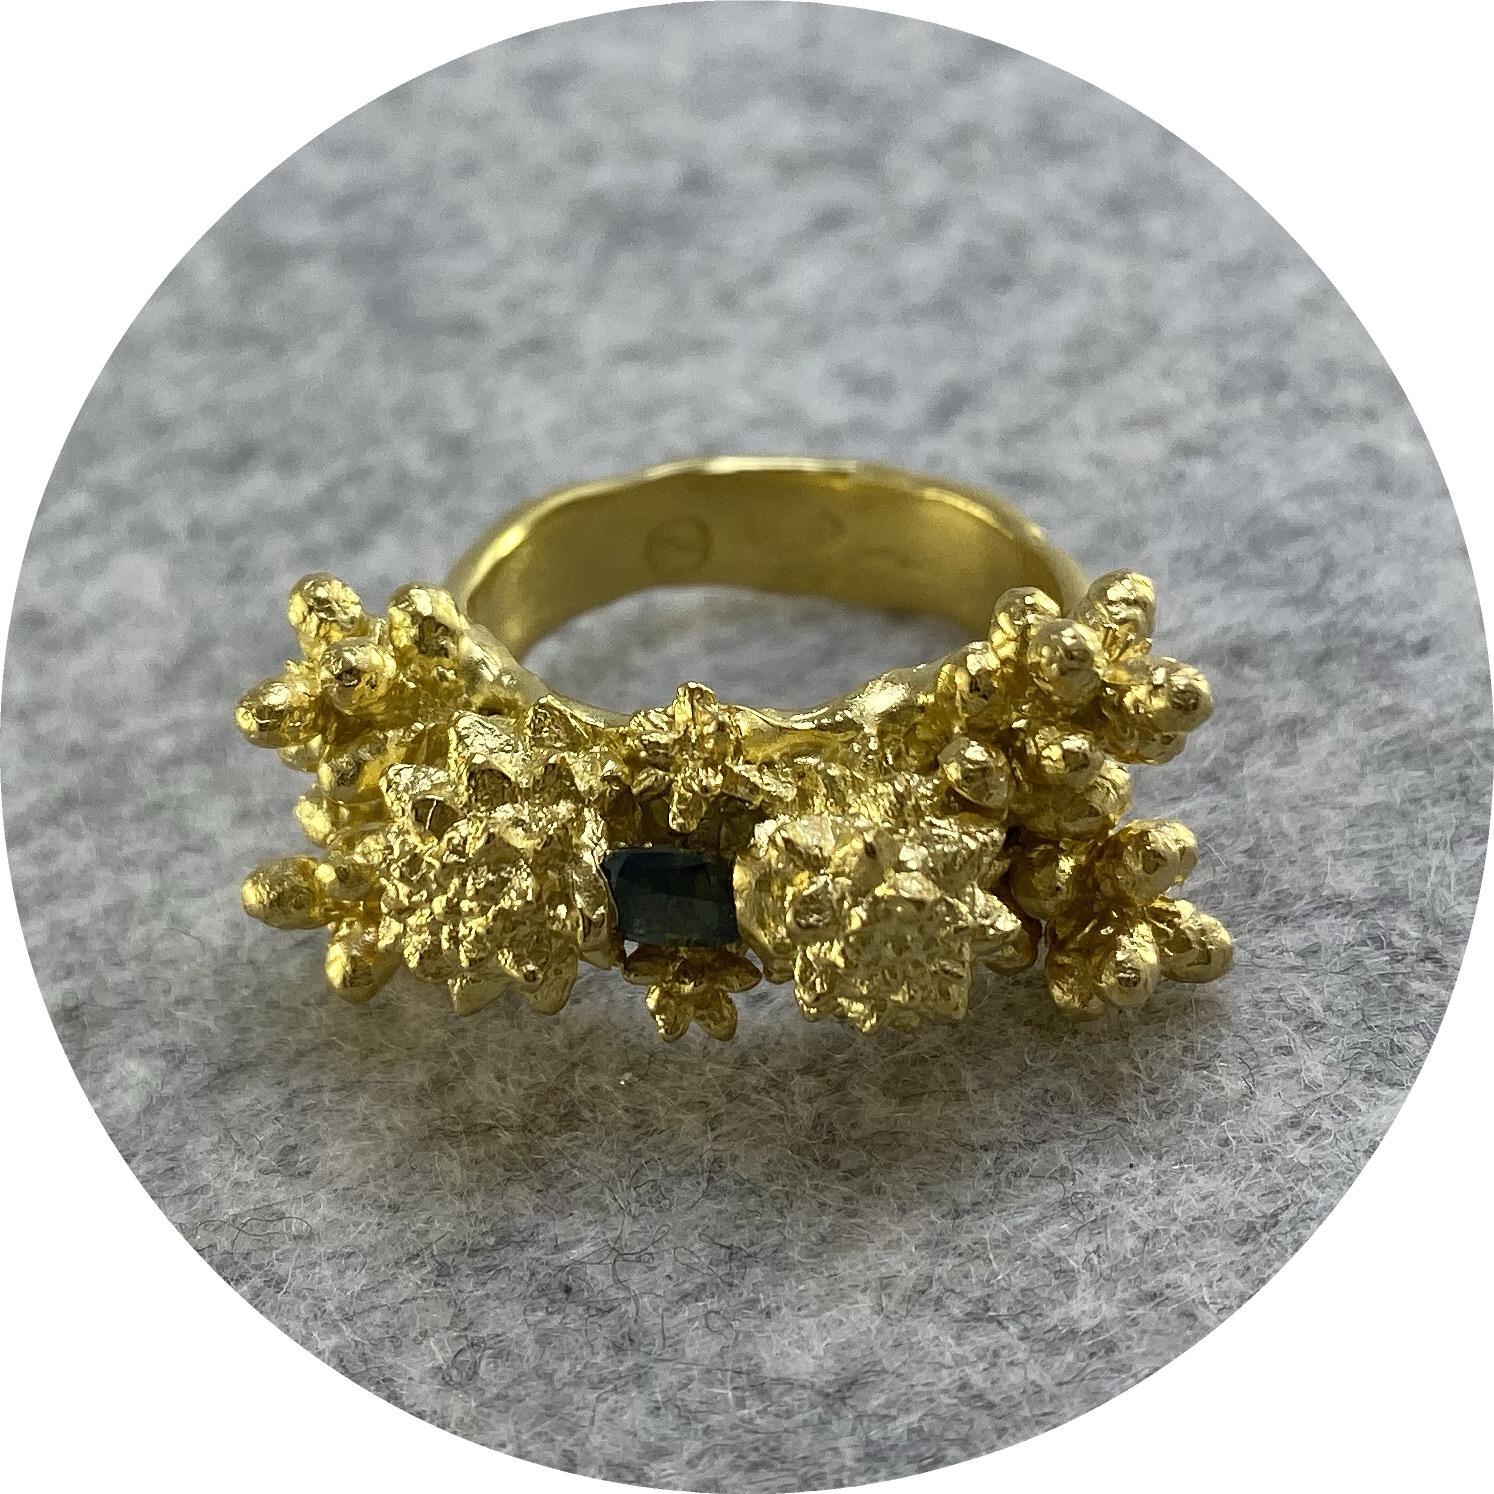 Manuela Igreja- Enchanted Forrest Ring. Yellow gold plated sterling silver. Parti sapphire QLD. Size M.